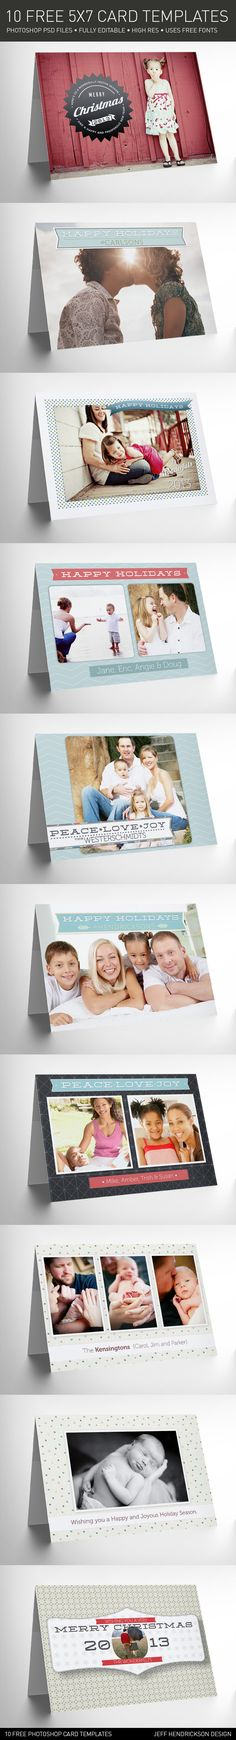 10 free hi-res greeting card templates for photographers.